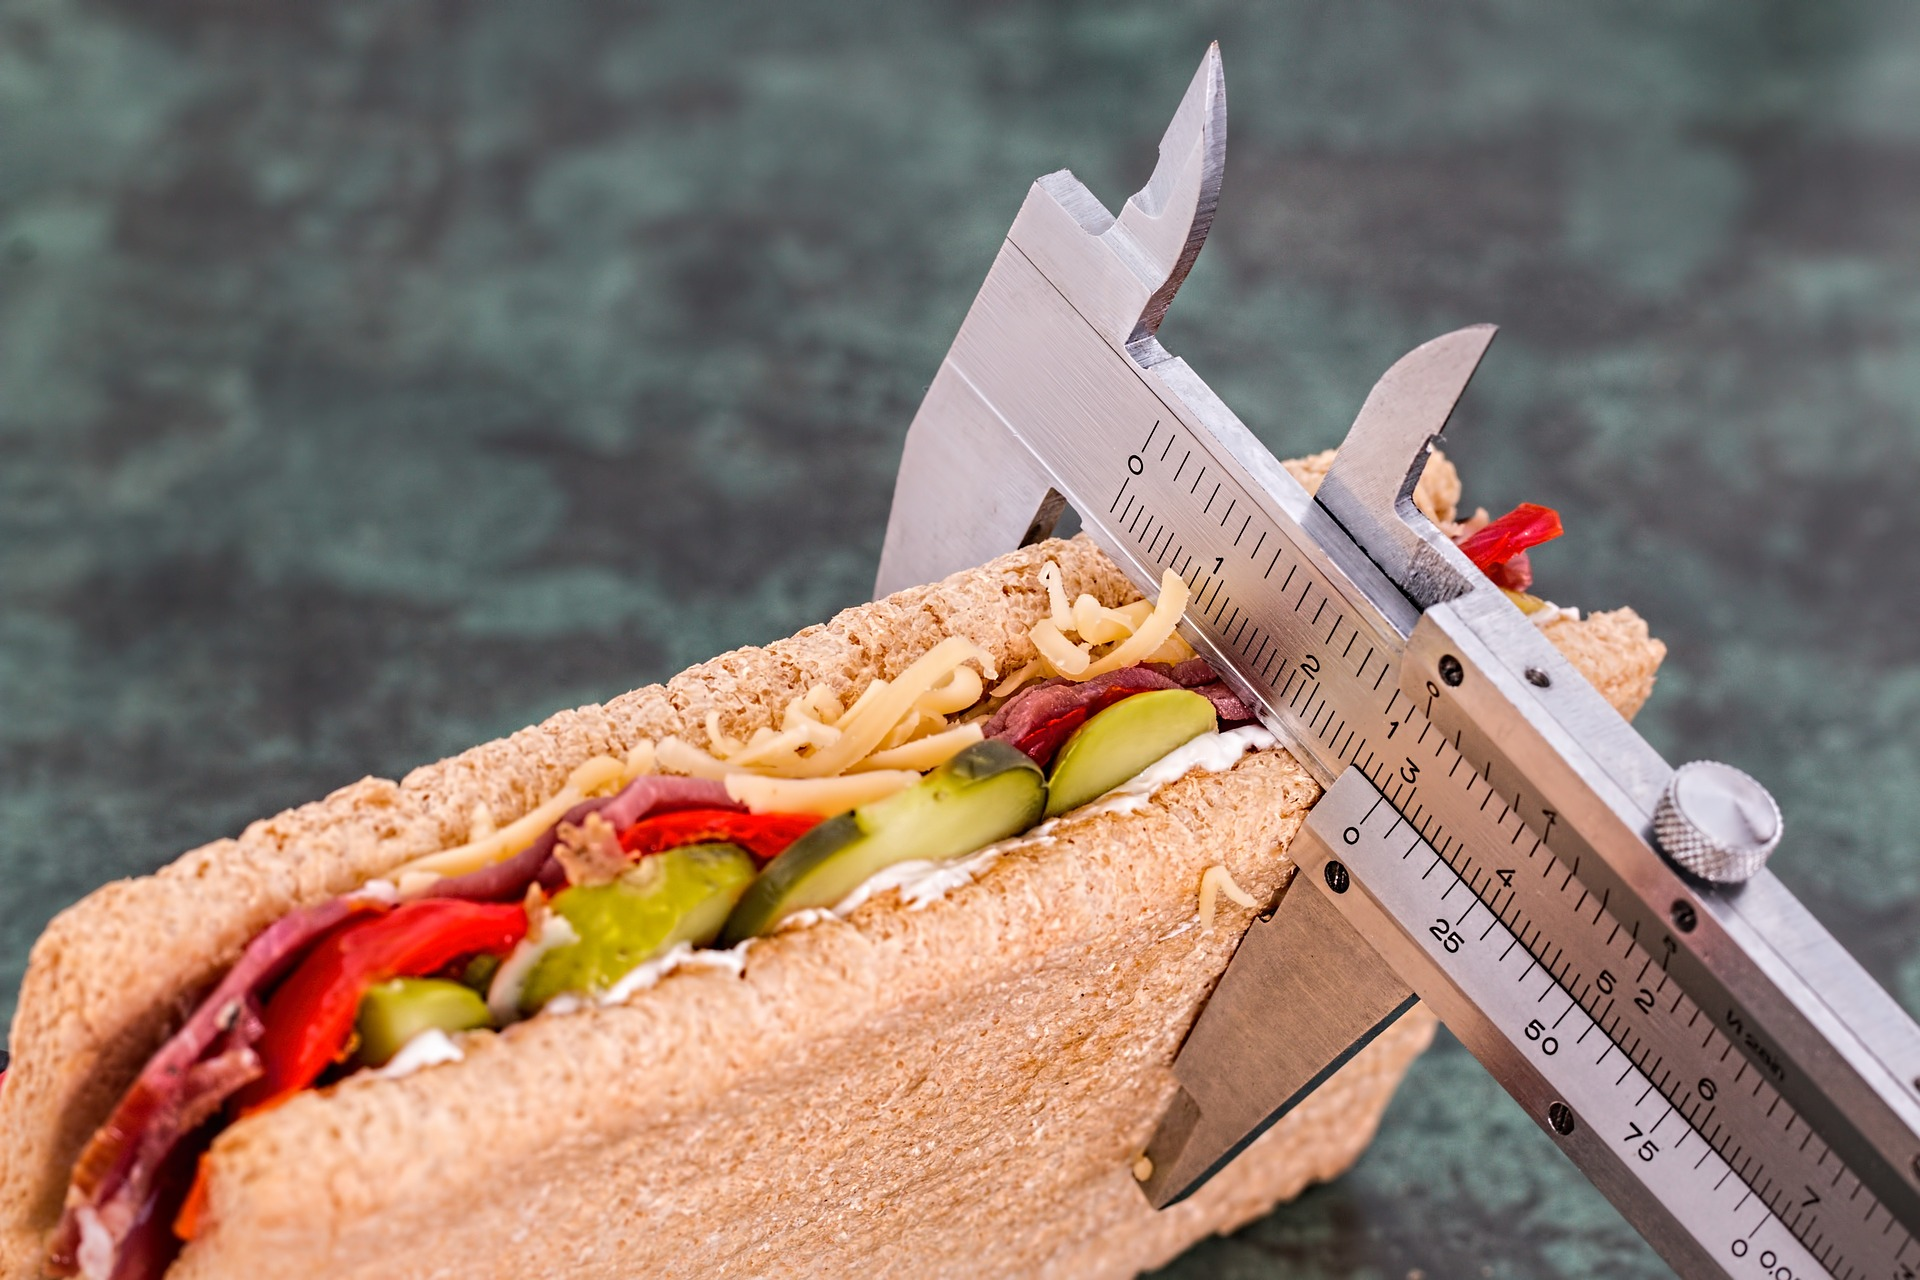 diets don't work for intuitive eating